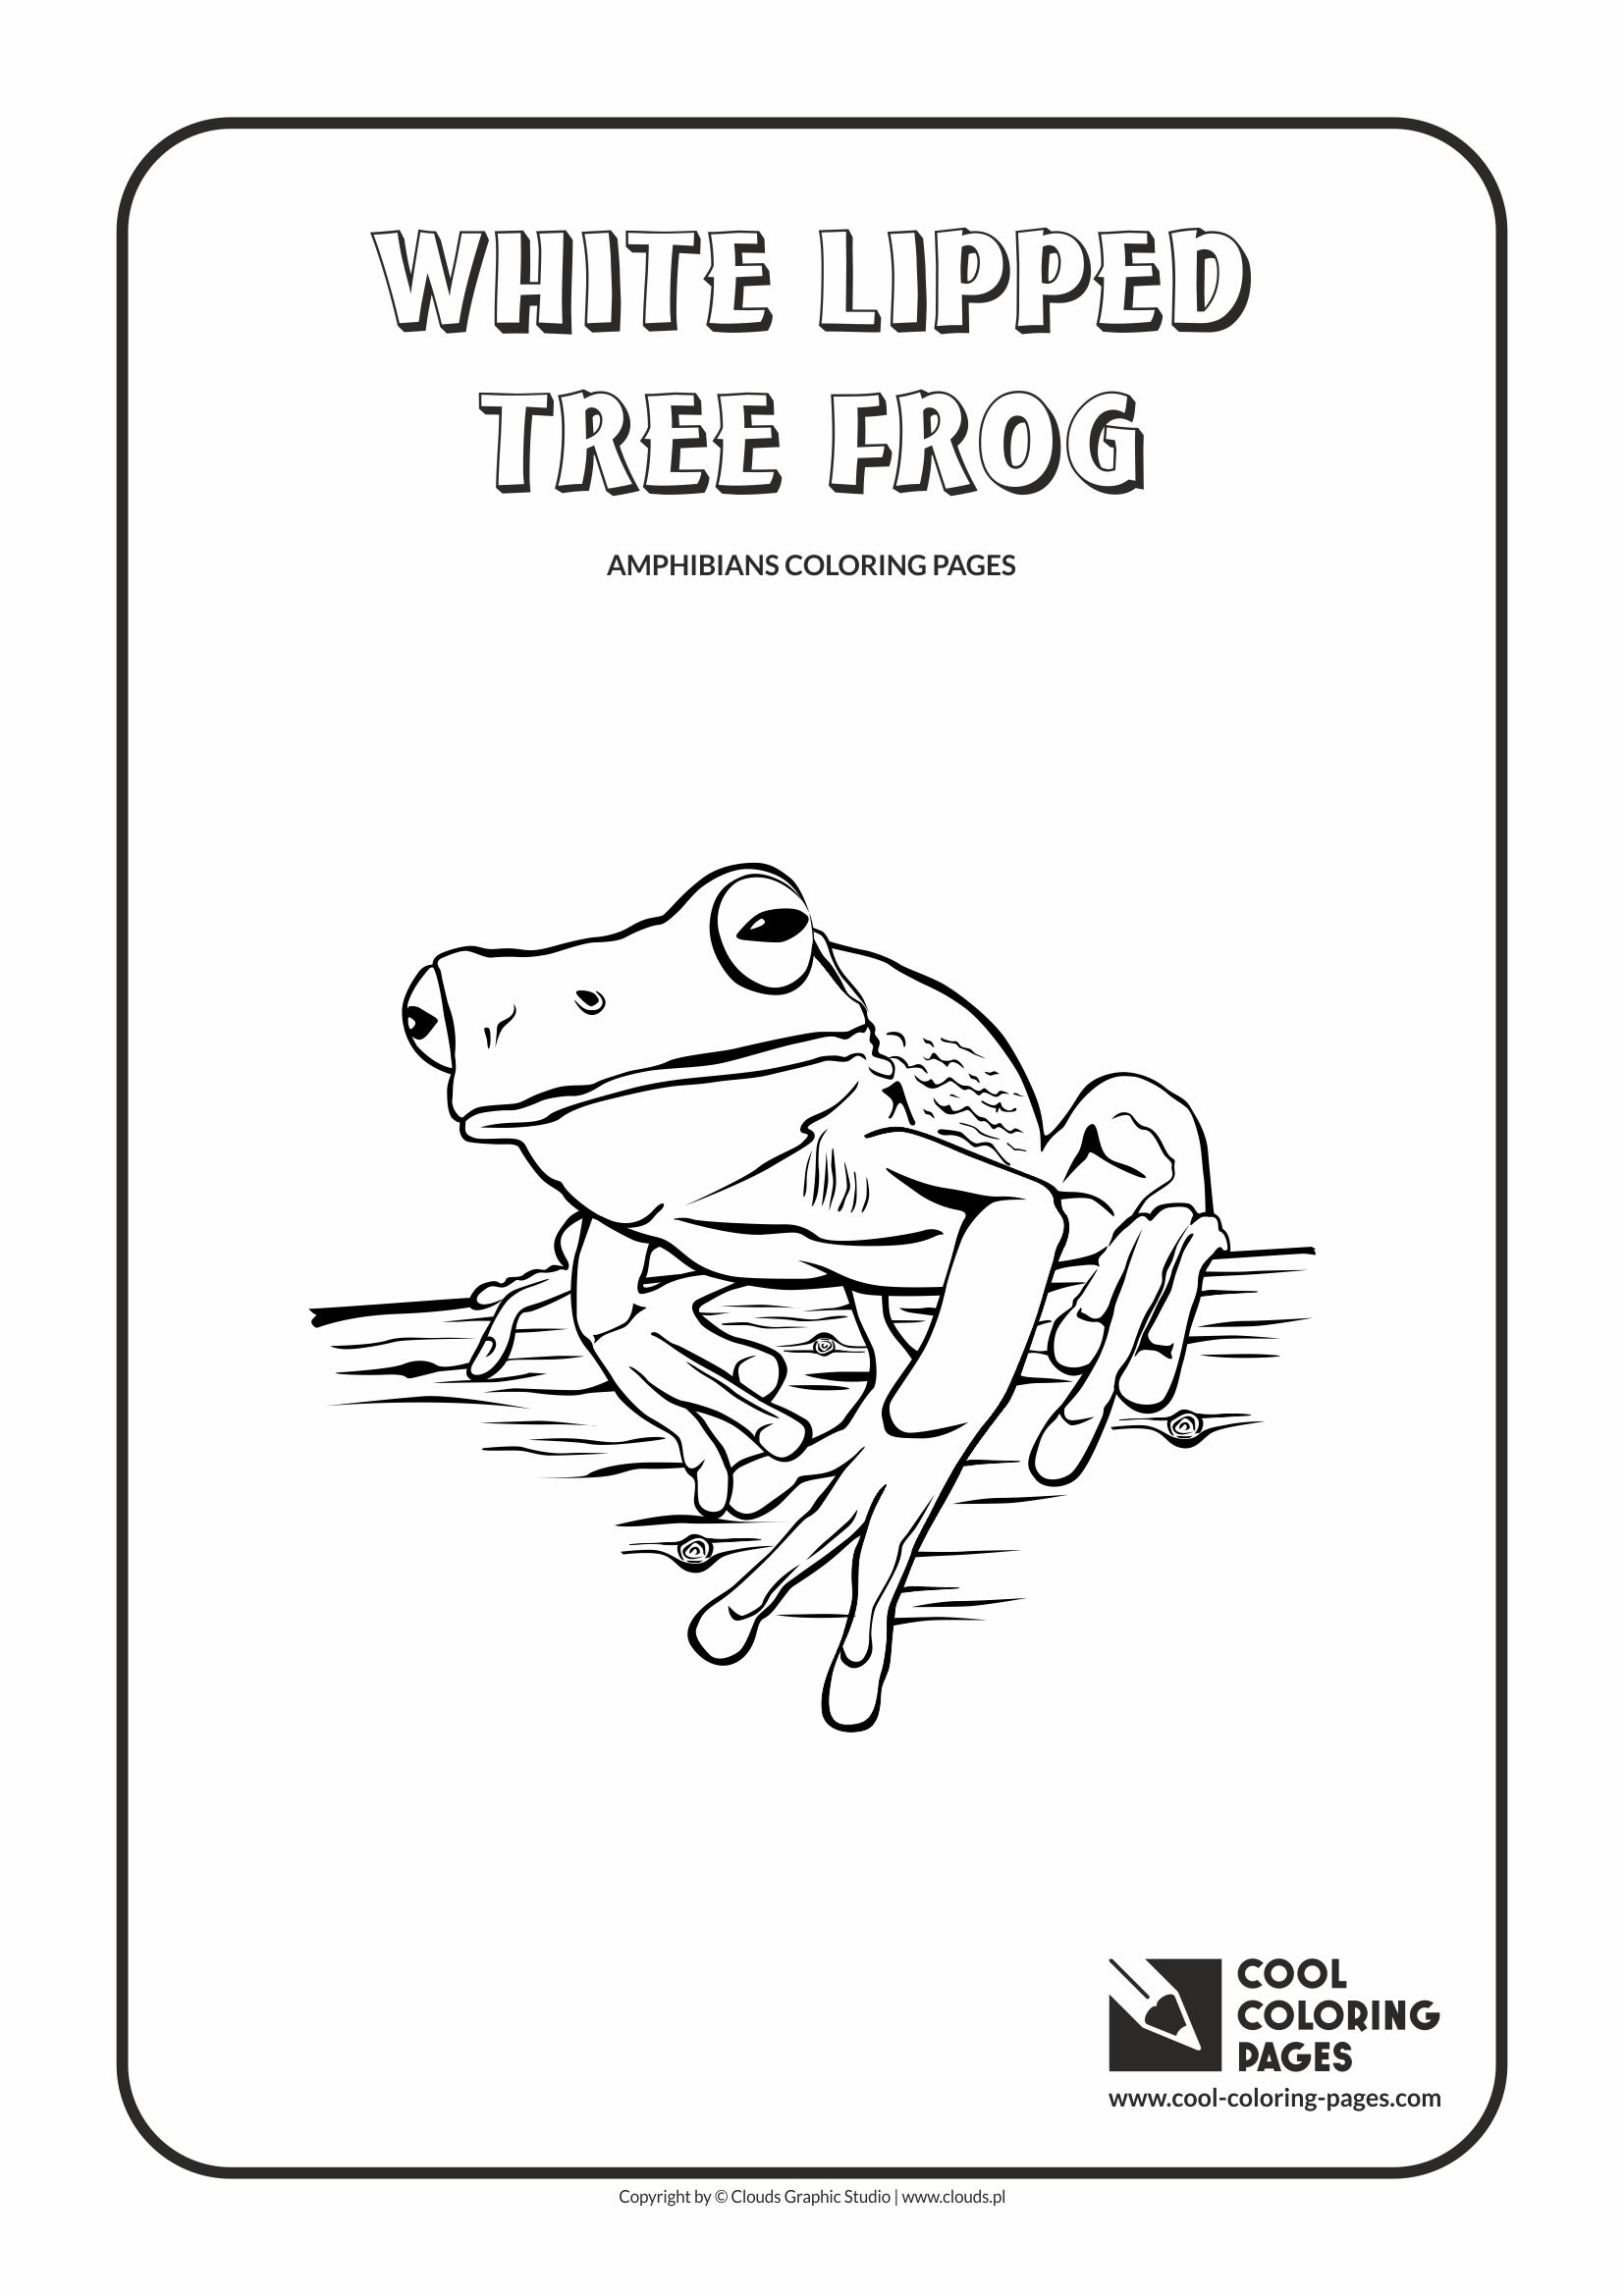 Cool Coloring Pages - Animals / White lipped tree frog / Coloring page with white lipped tree frog